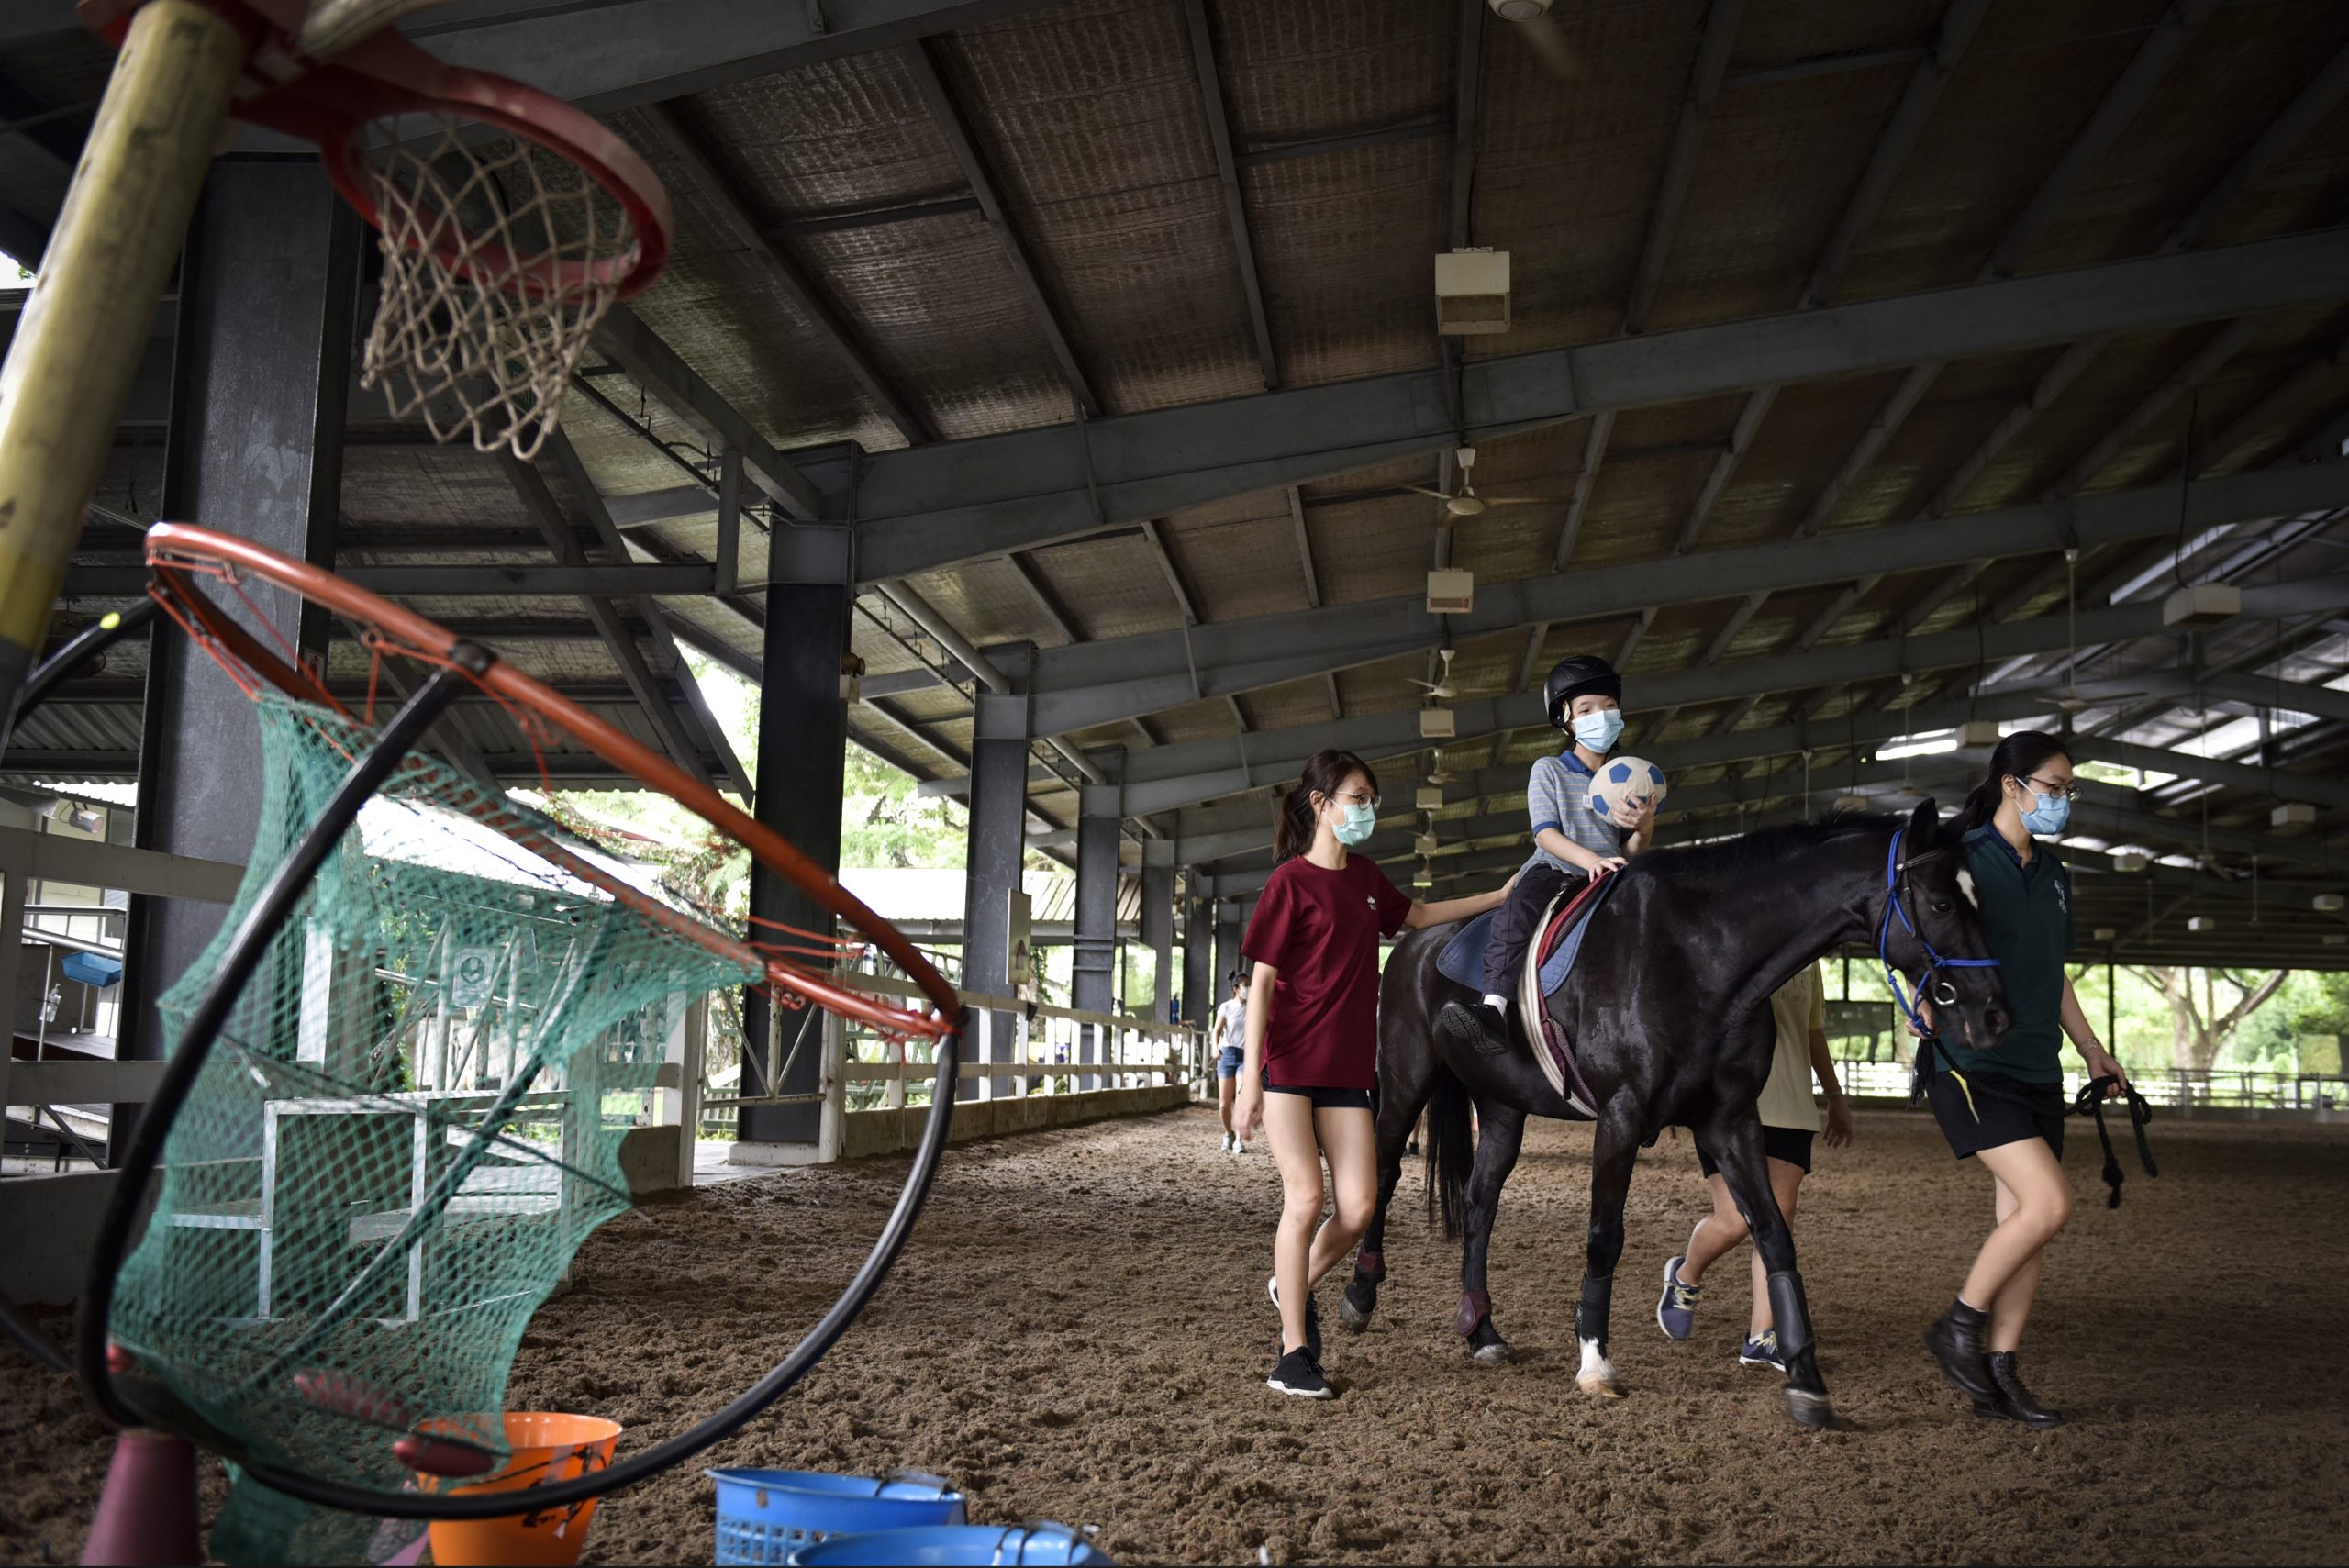 Hippotherapy, run by RDA Singapore, has been shown to improve mobility, motor coordination, balance, respiration and self-confidence of people with disabilities. Through donations and help from volunteers, clients like Elijah (pictured) ride with therapy horses or ponies free of charge. CAROLINE CHIA